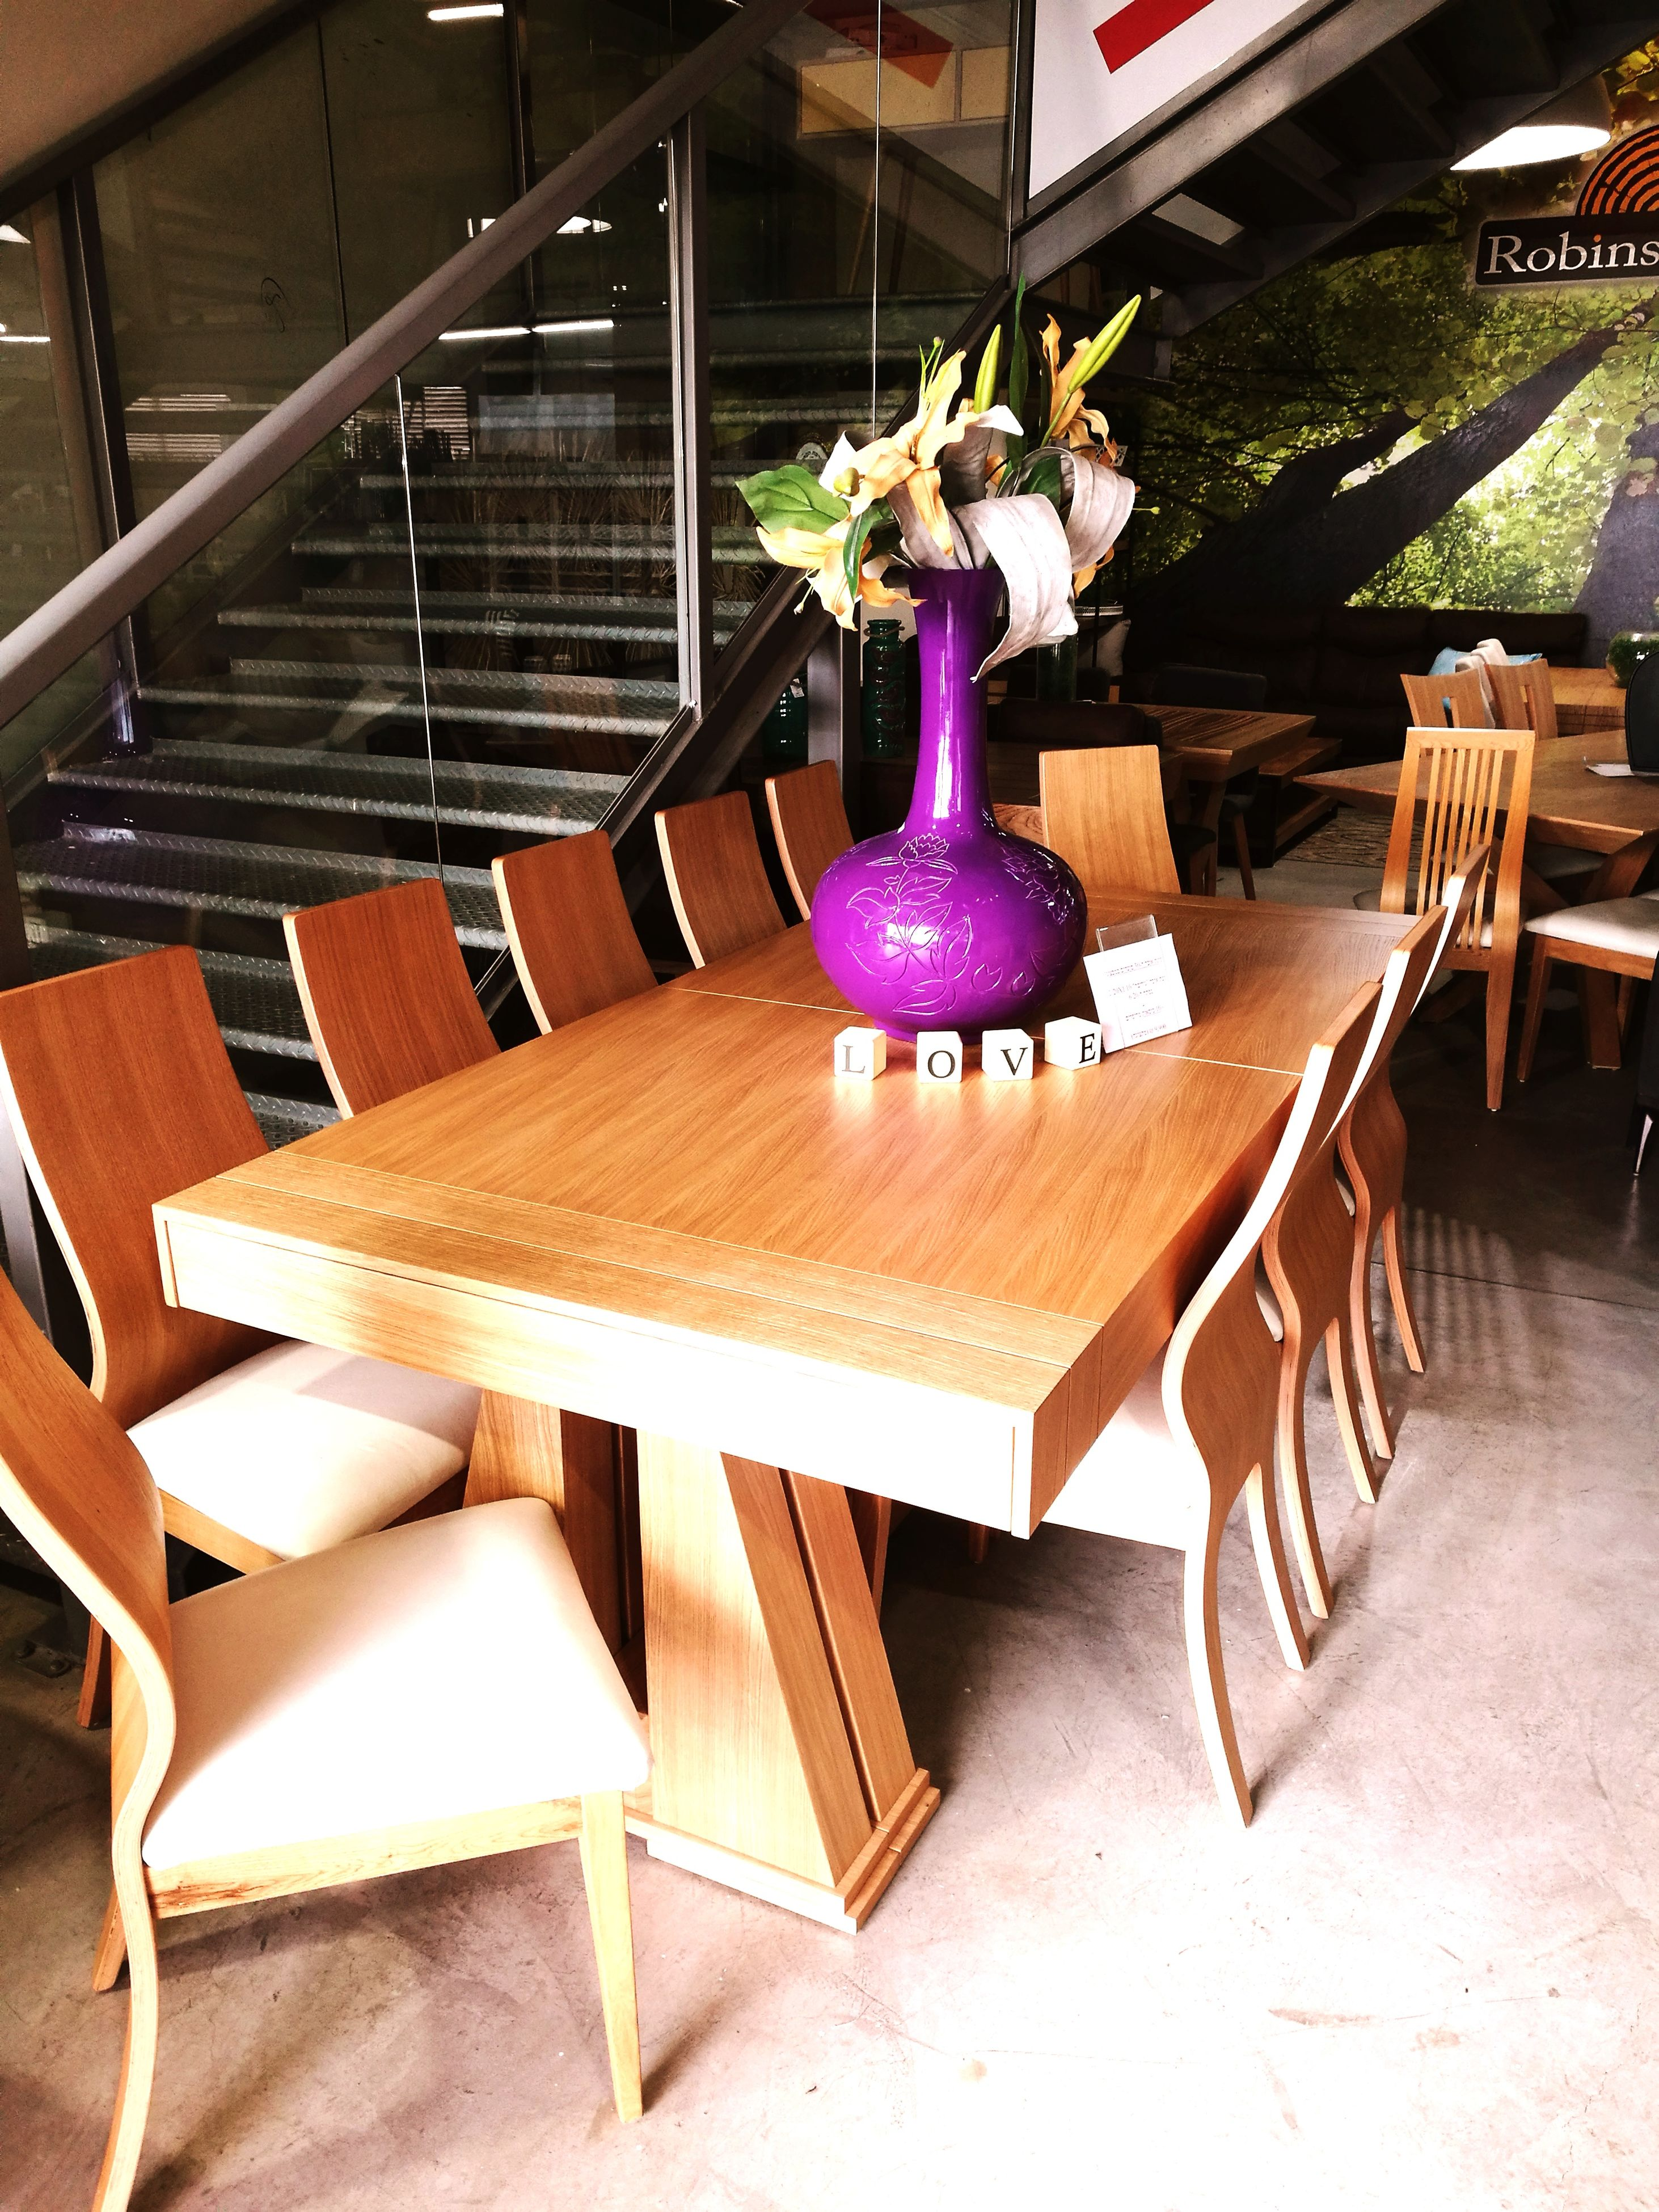 table, chair, wood - material, flower, indoors, vase, no people, furniture, day, seat, close-up